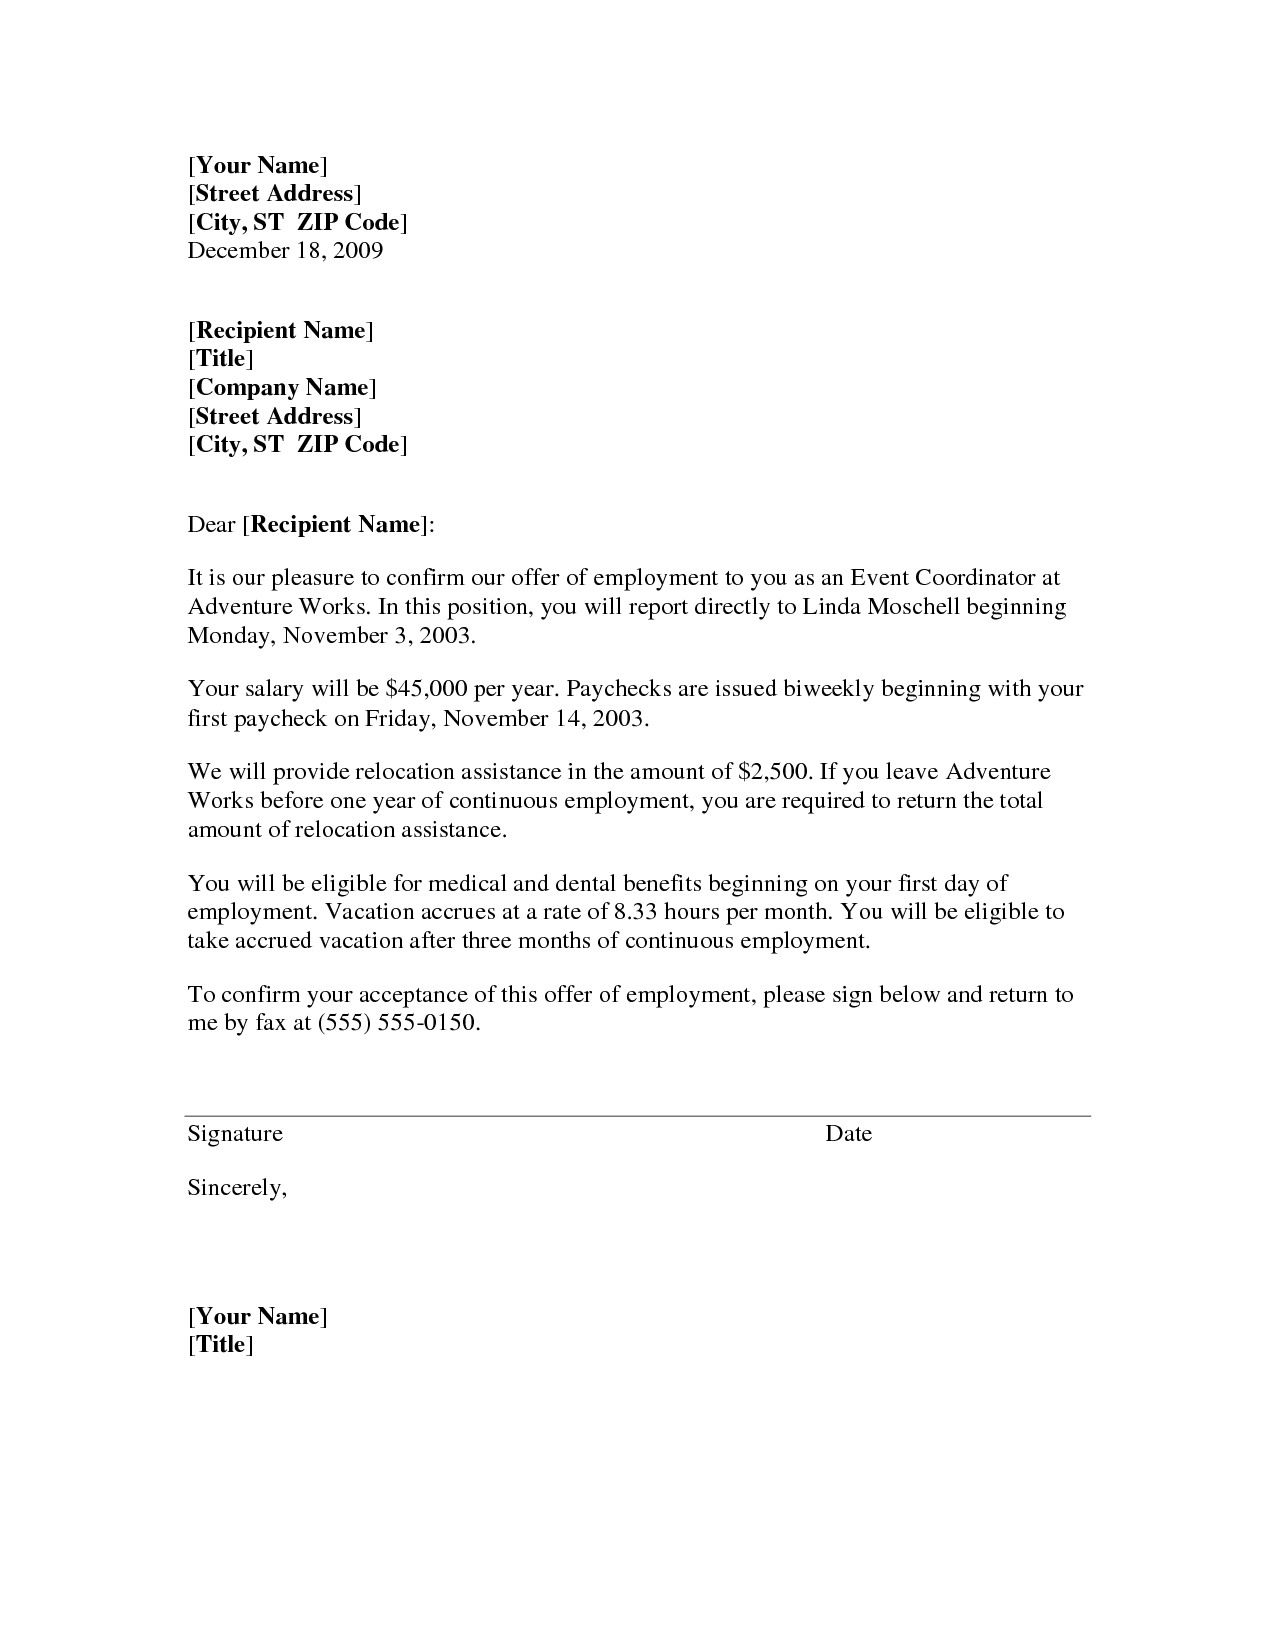 Sample Cover Letter Explaining Relocation Writing Cute766